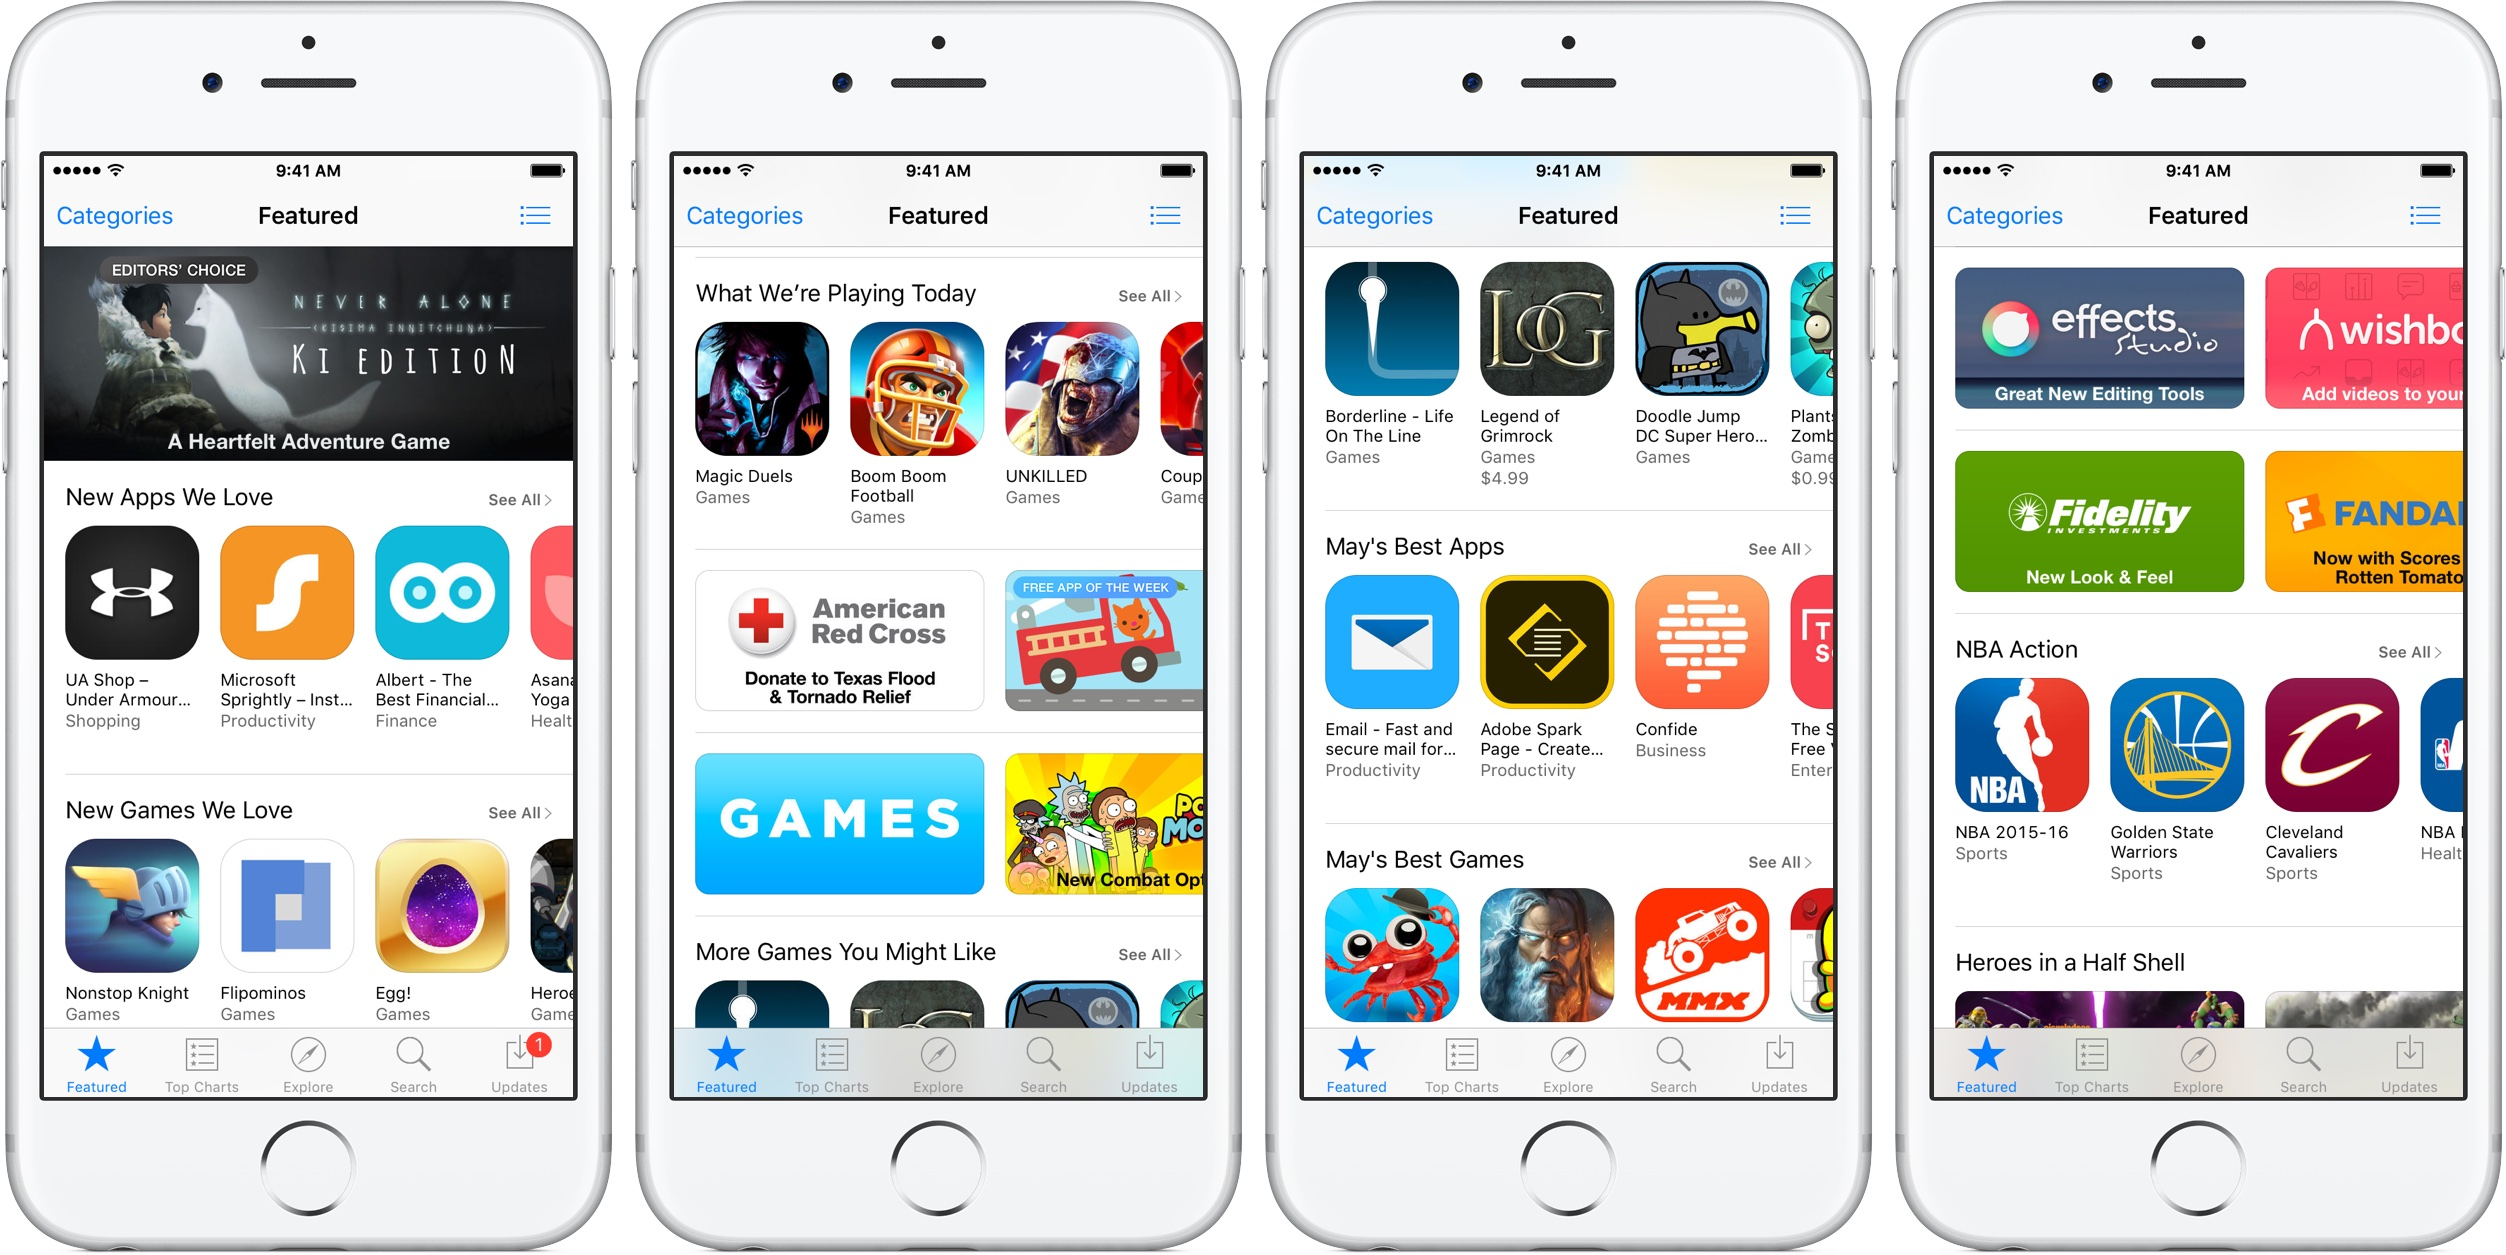 Sneaky Subscriptions walking in on the users in iOS's App Store